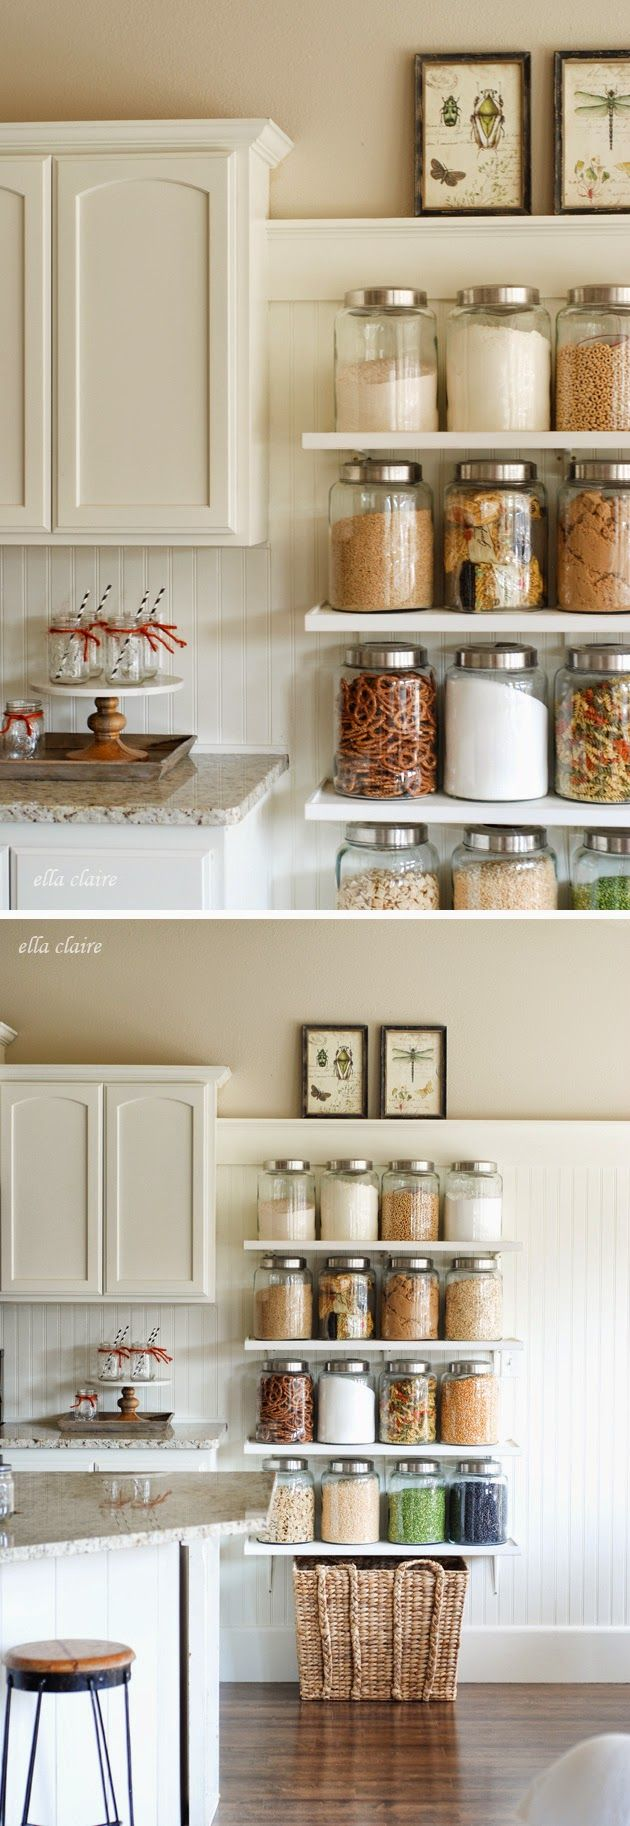 DIY: Country Store Kitchen Shelves - creating pantry space in the kitchen by adding shelves and glass canisters with seals.